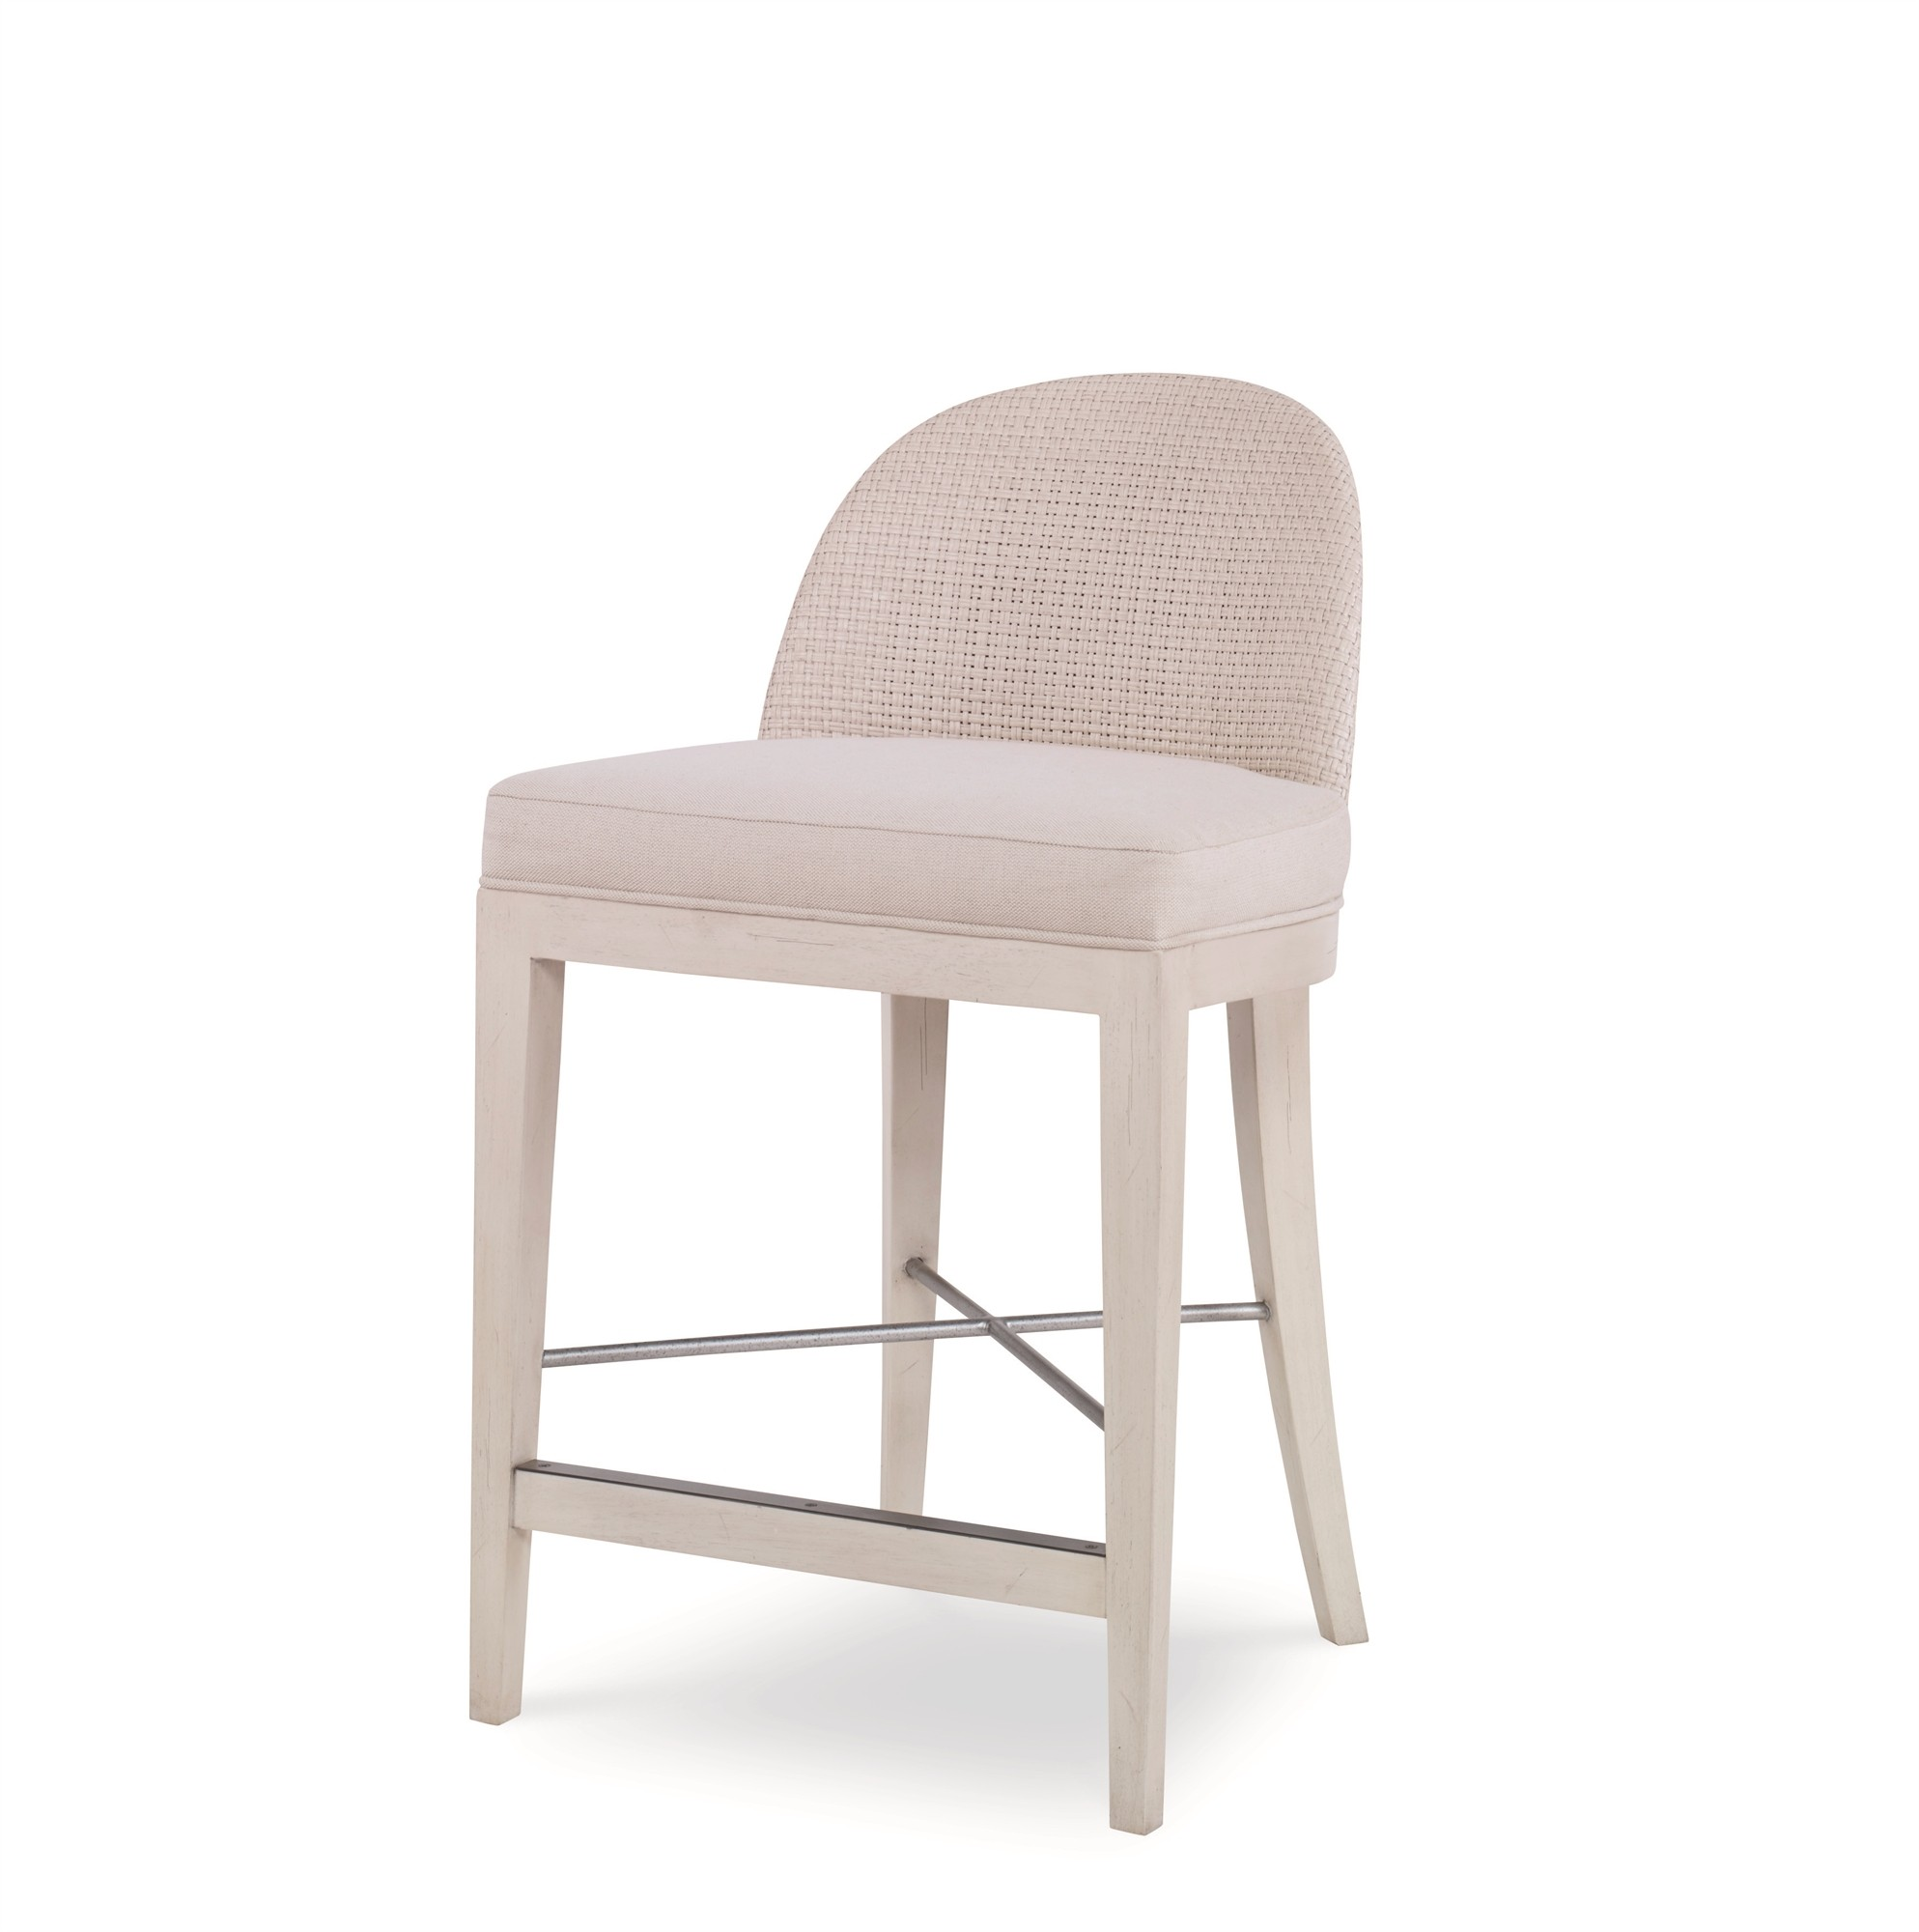 Tybee Counter Stool-Peninsula/Flax (Lw-056-105-07)